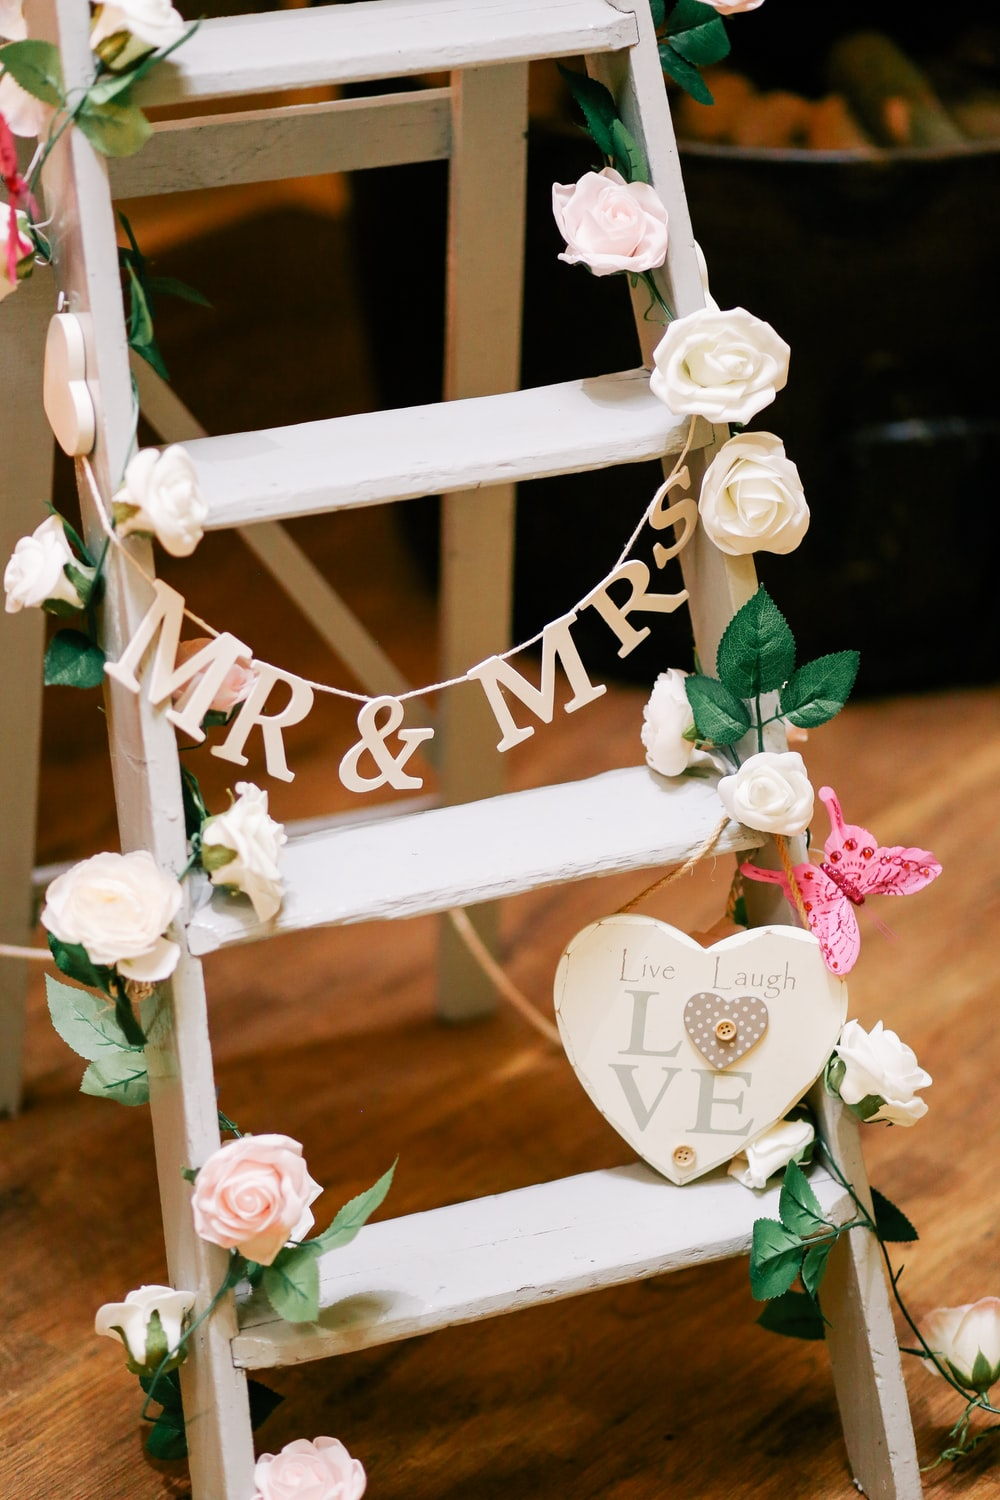 Mr. & Mrs. ladder decor